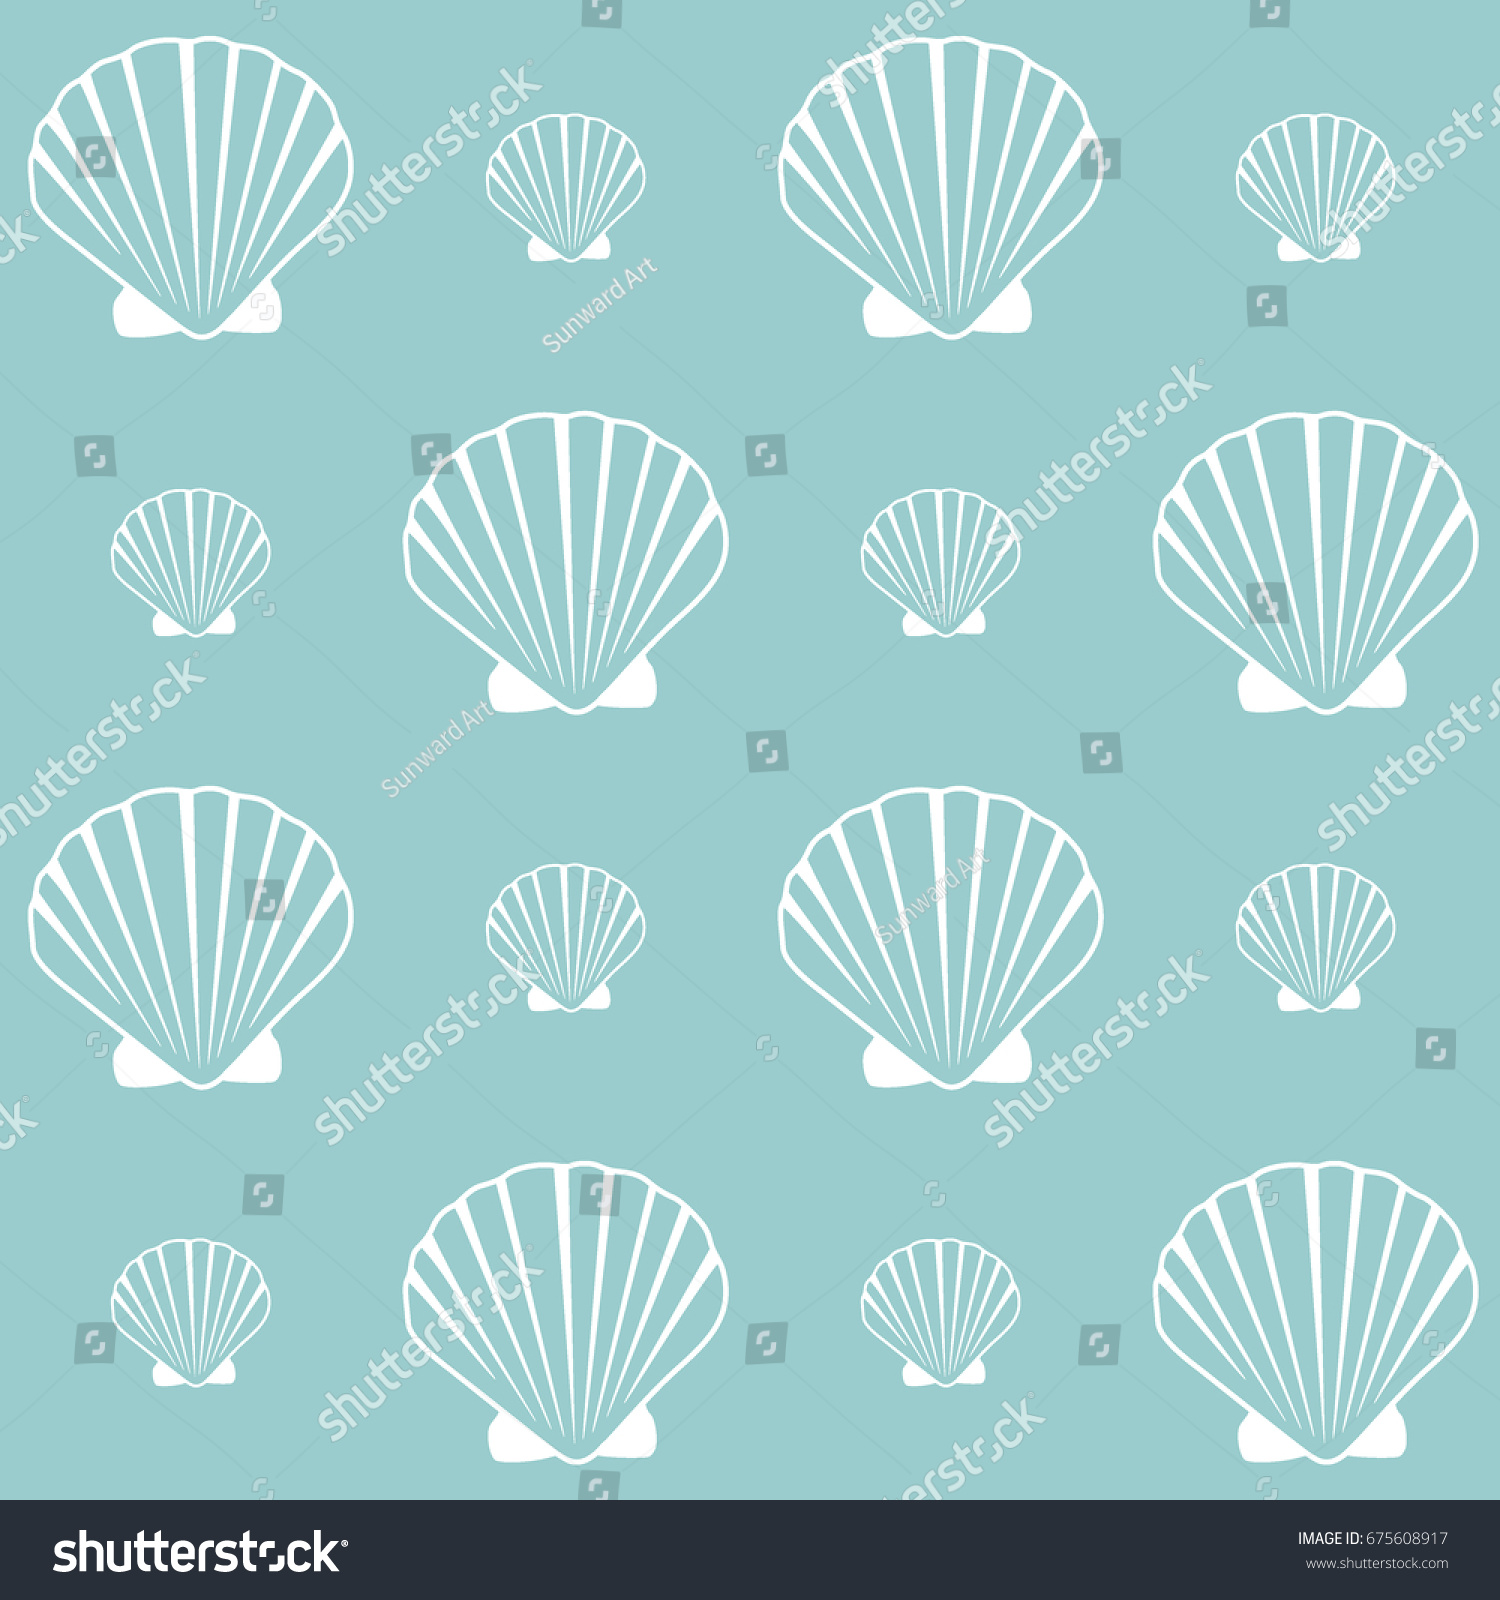 Vector sea shell pattern illustration pearl stock vector 675608917 vector sea shell pattern illustration pearl stock vector 675608917 shutterstock biocorpaavc Image collections